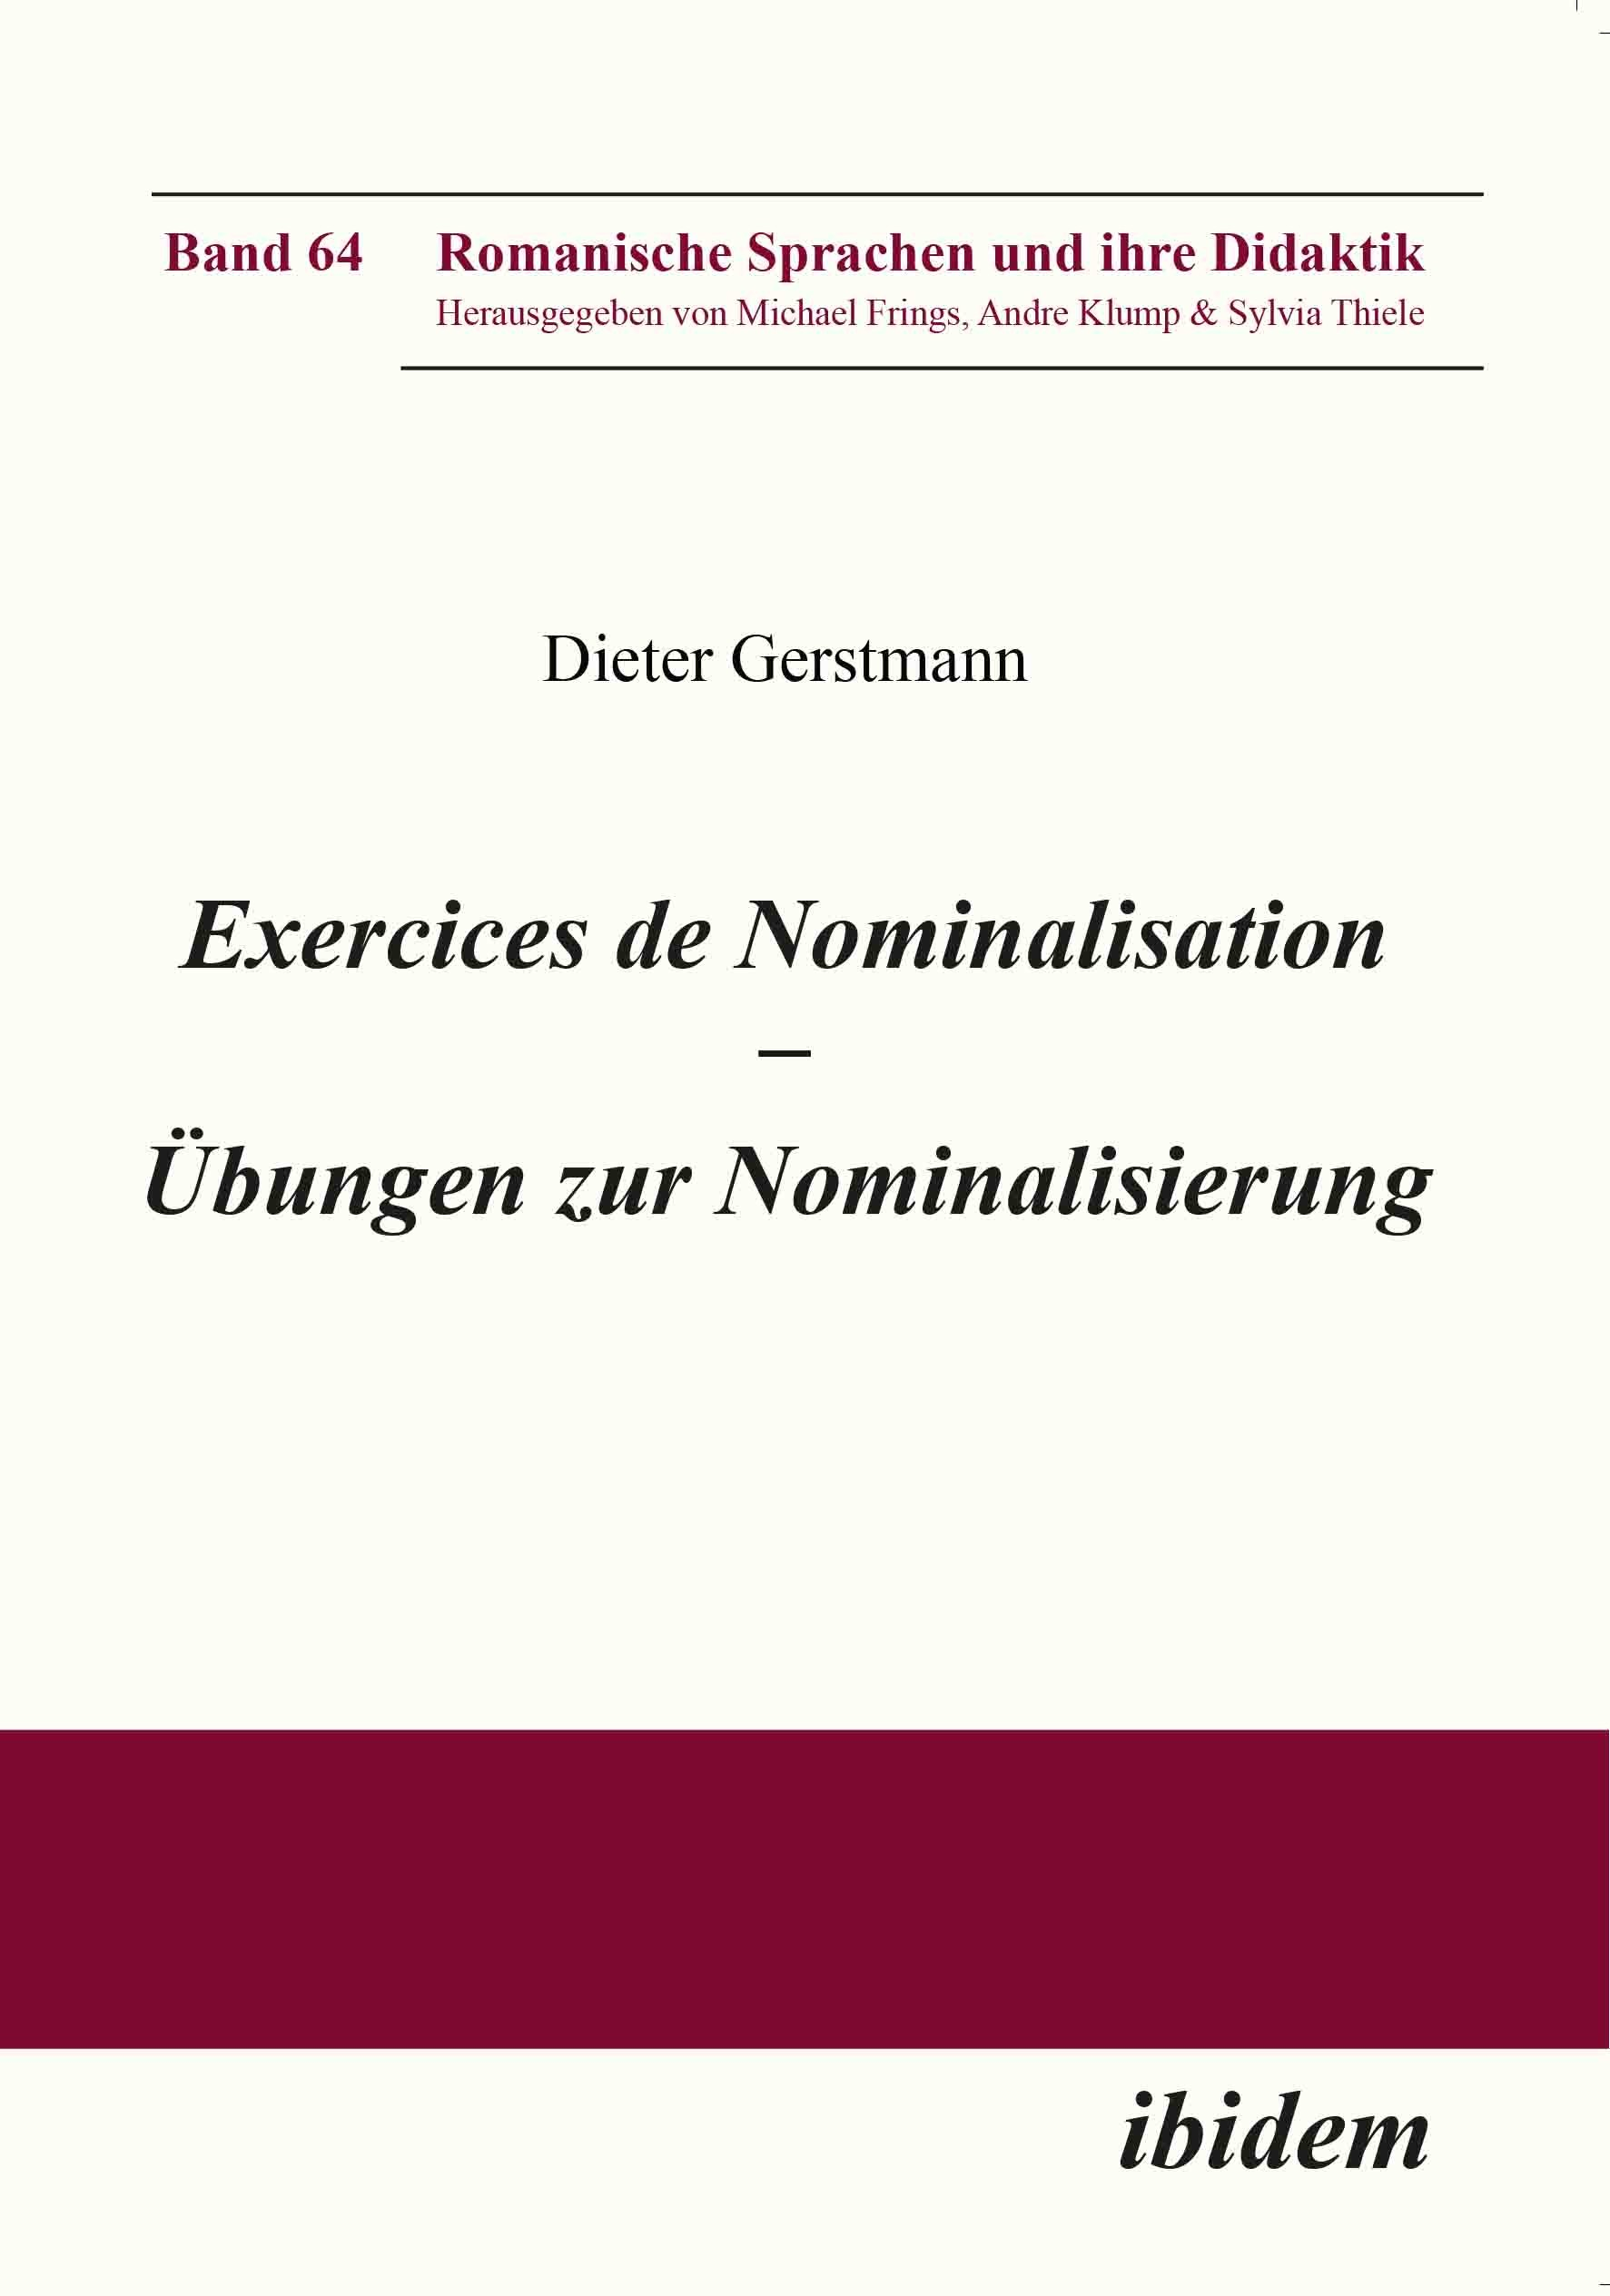 Exercices de nominalisation